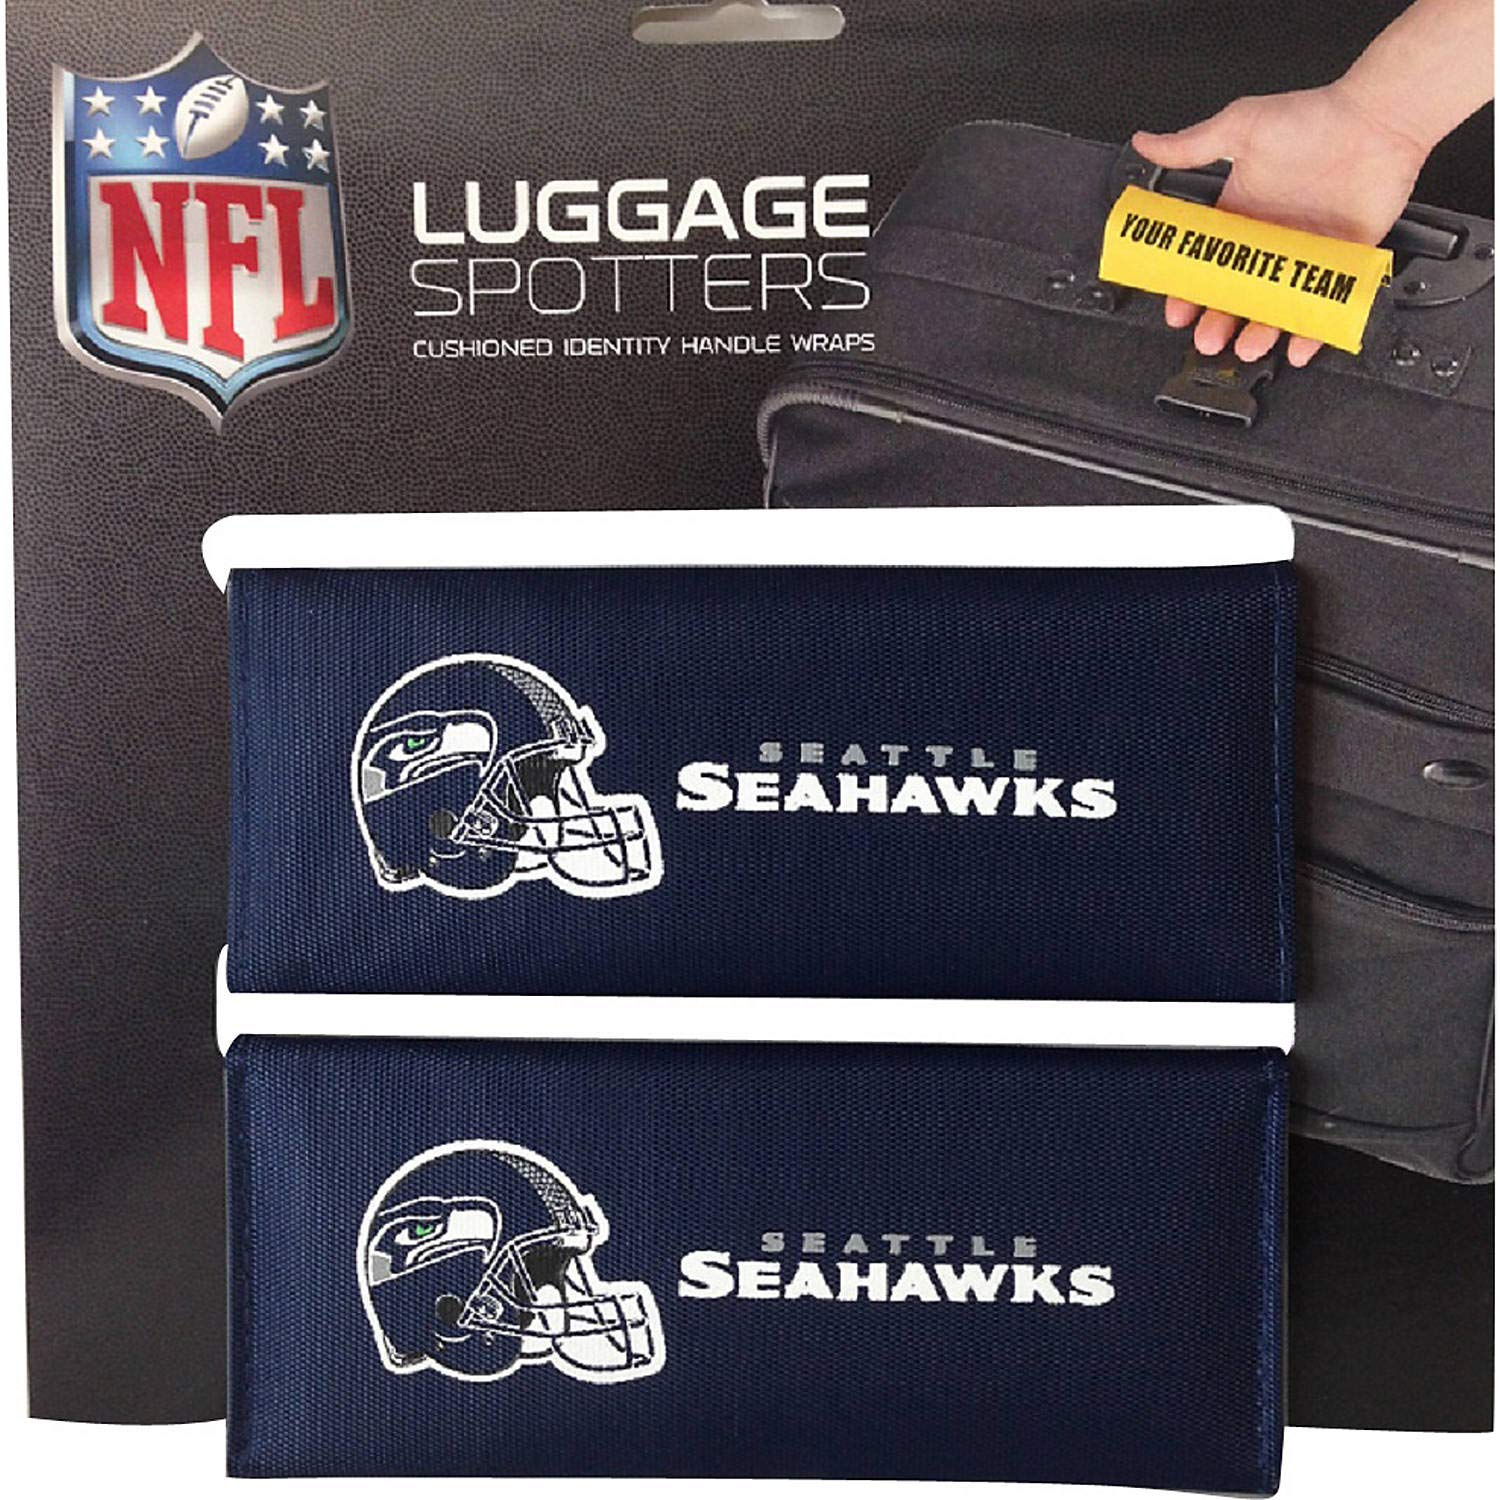 SEAHAWKS Luggage Spotter Suitcase Handle Wrap Bag Tag Locator with I.D. Pocket 2-pk) - CLOSEOUT! SELLING FAST! by Luggage Spotter